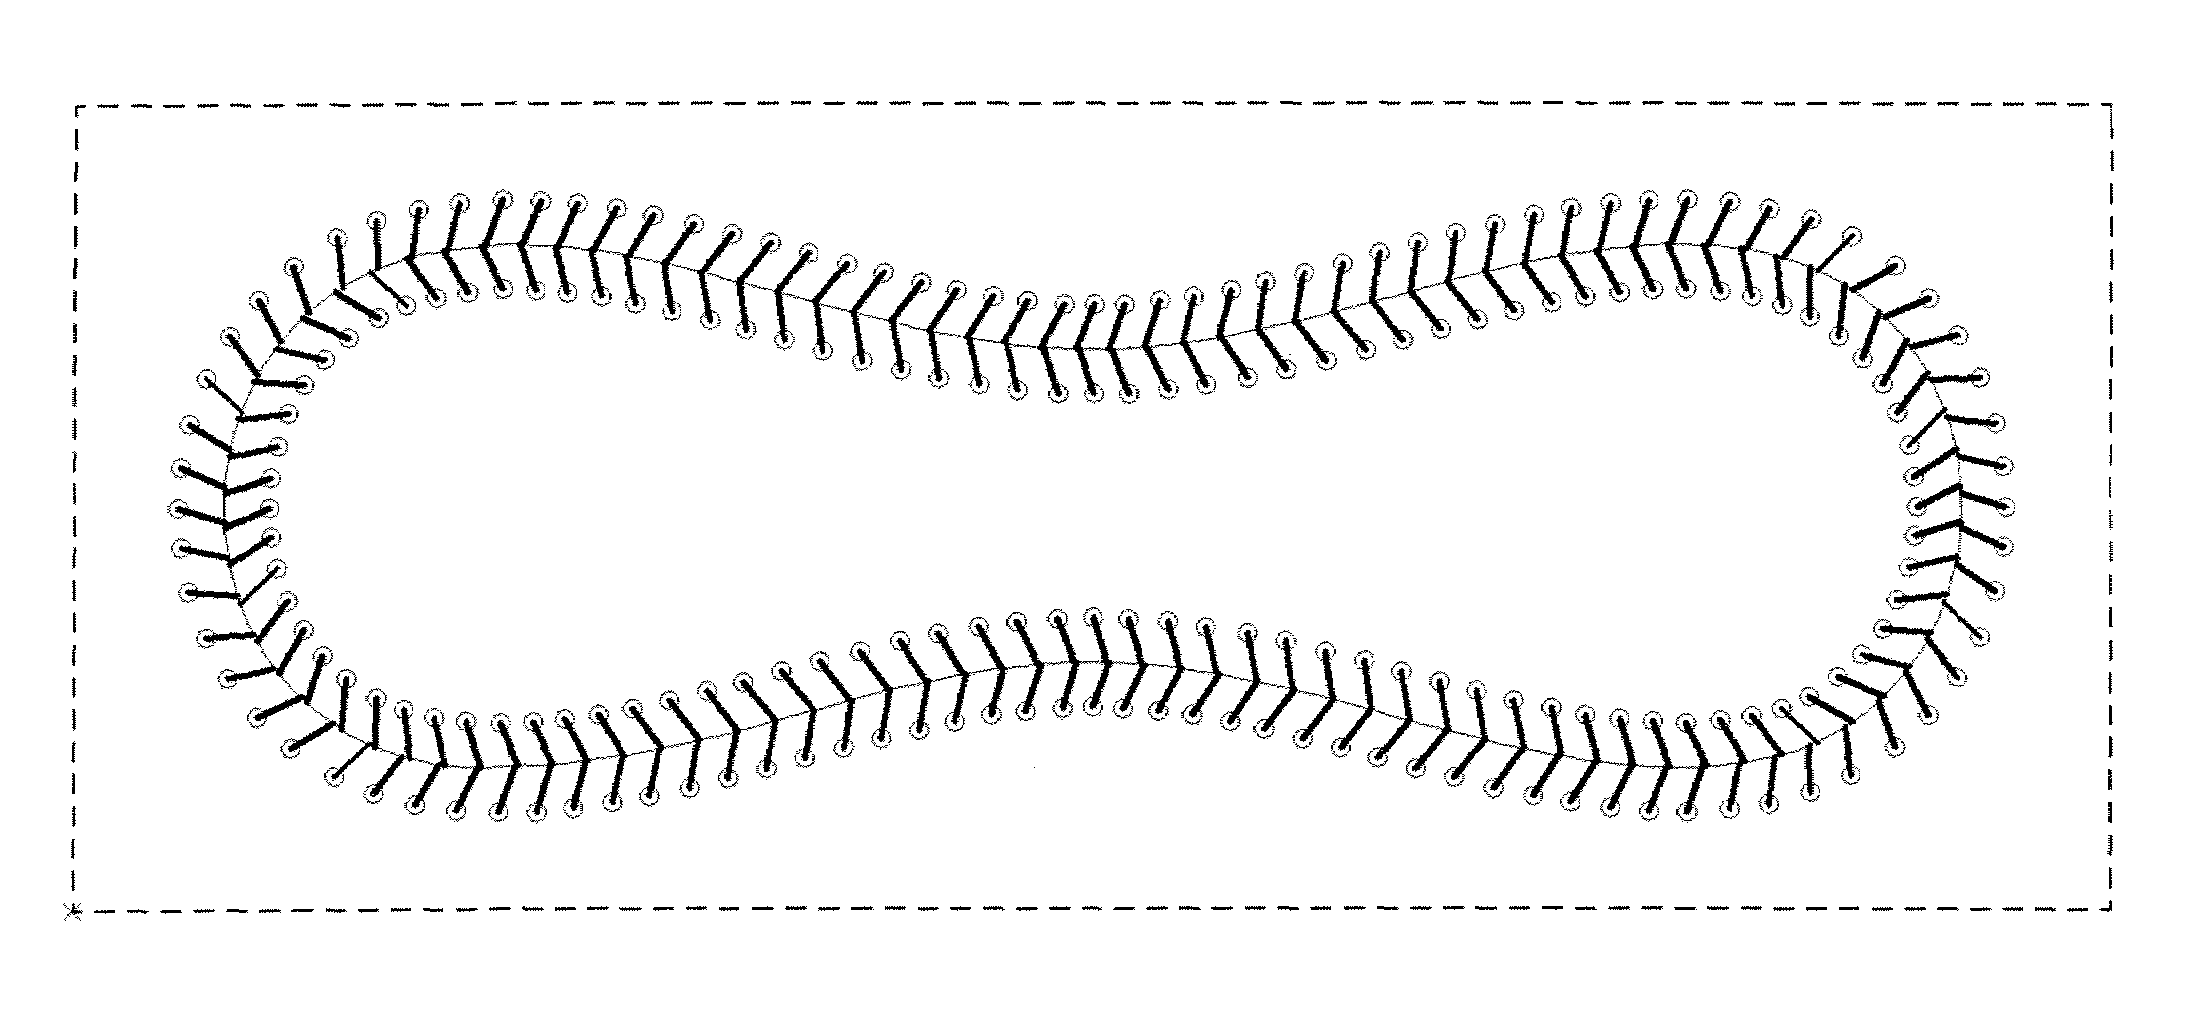 Drawn baseball baseball stitch With Patents Patent baseball Drawing